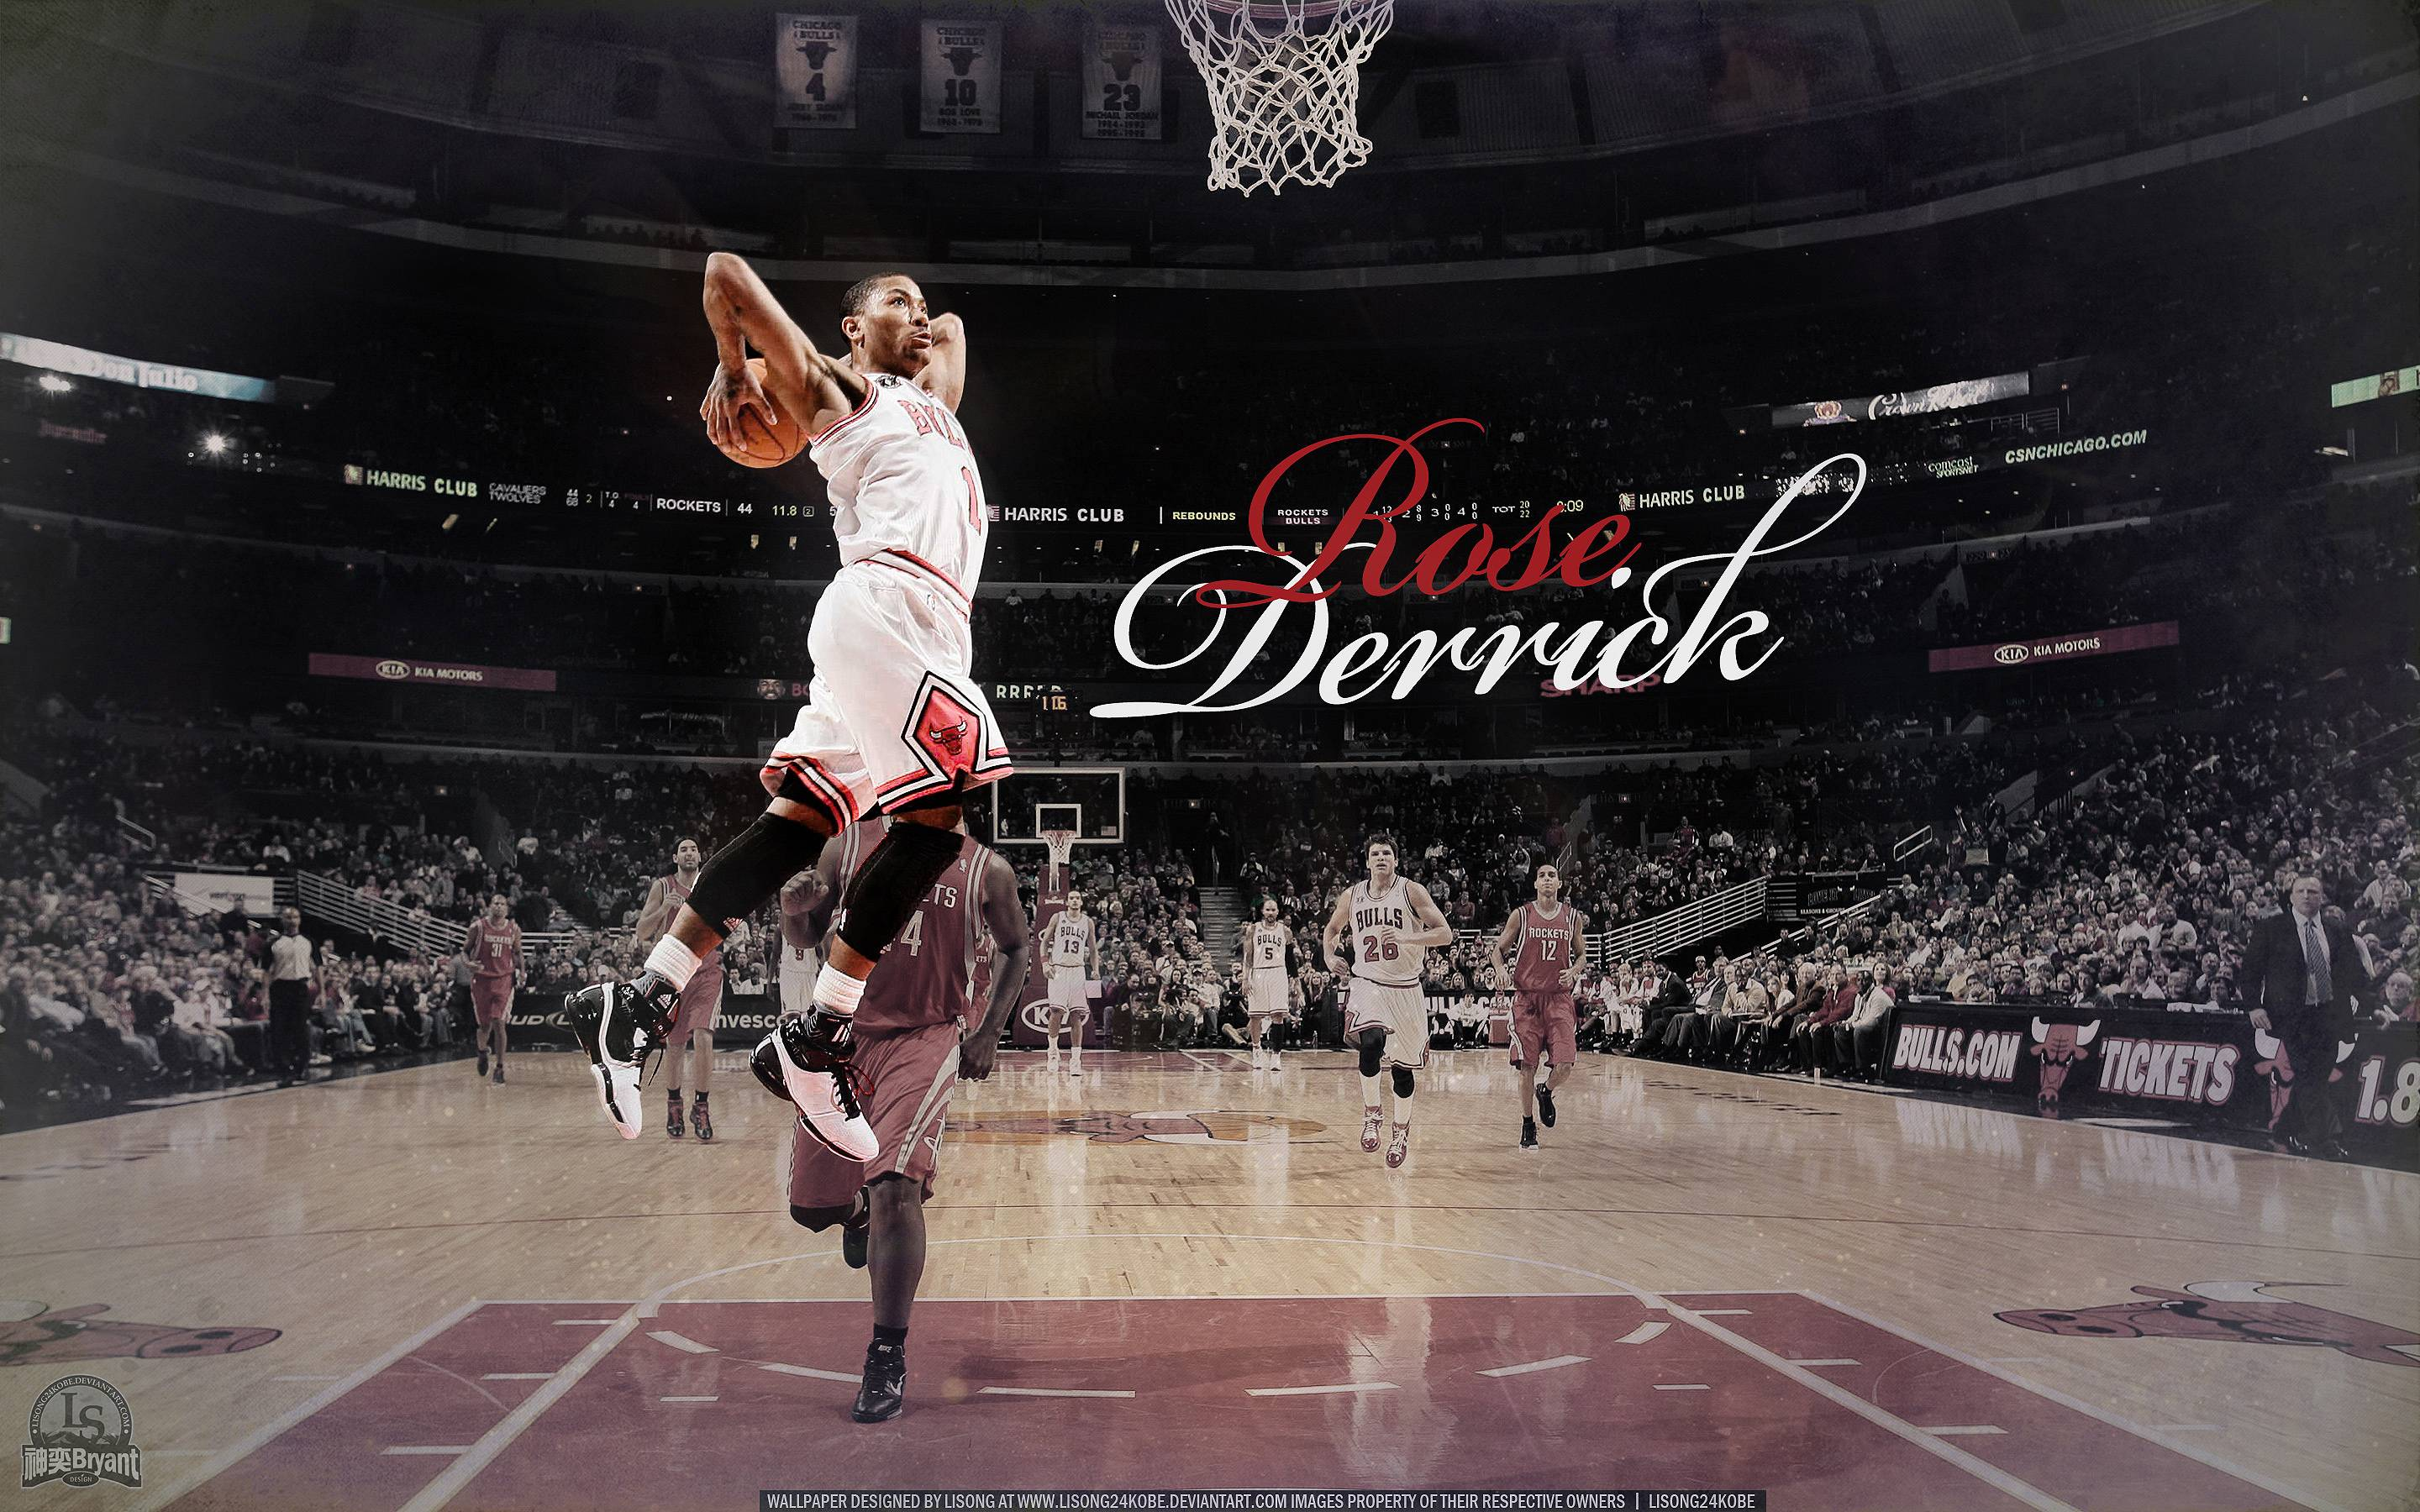 Derrick rose dunk wallpapers wallpaper cave wallpapers for derrick rose dunk wallpaper voltagebd Choice Image